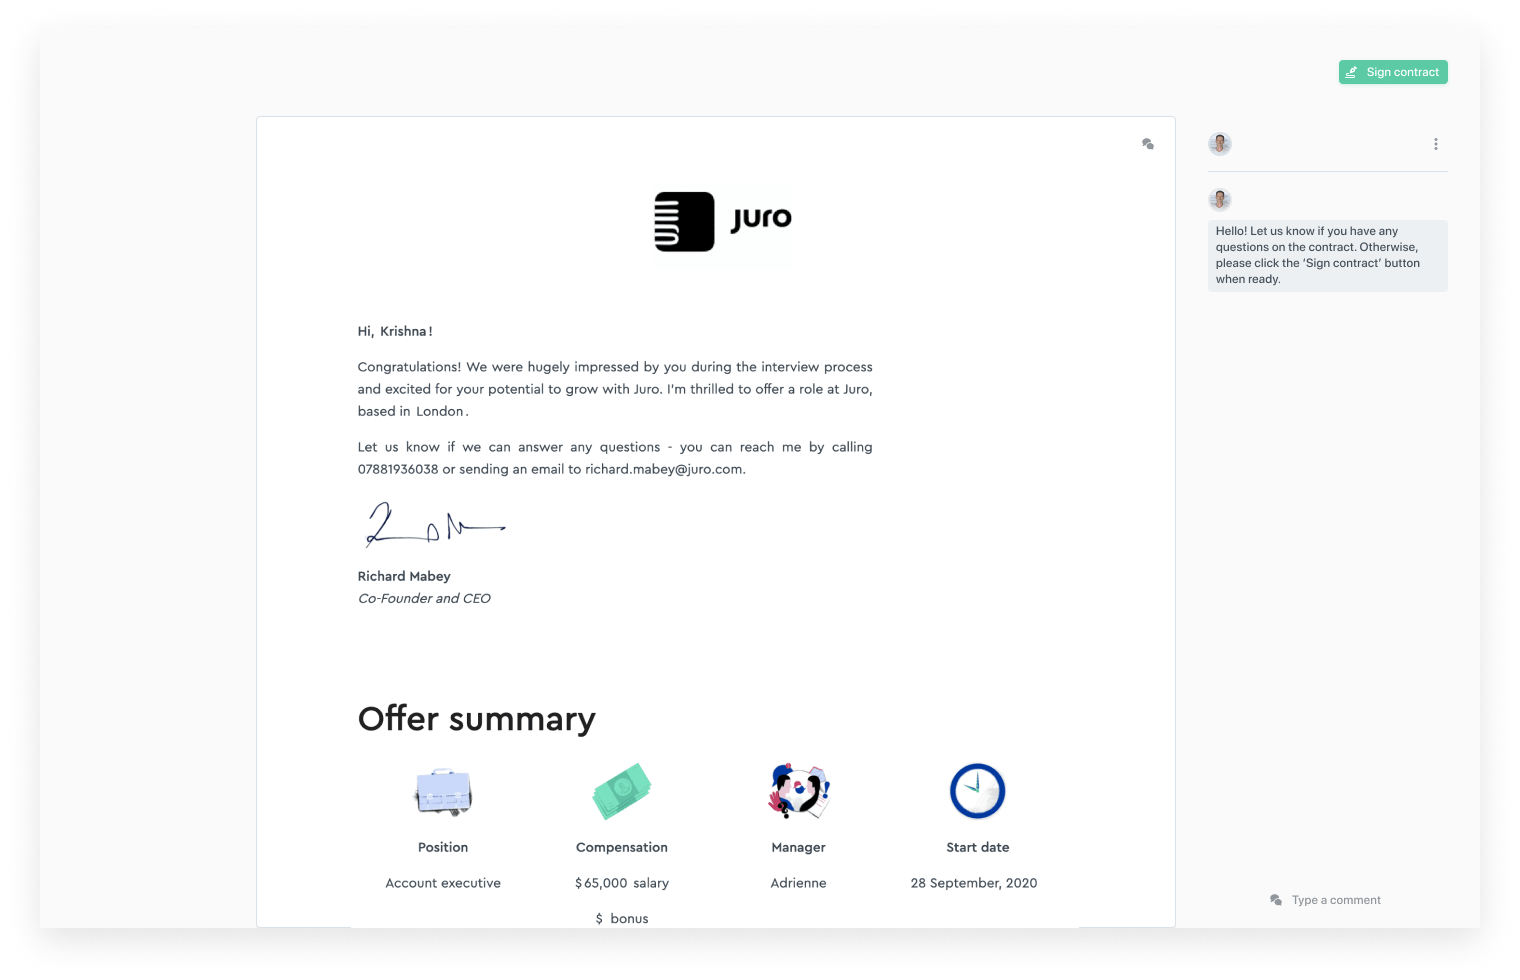 juro-employment-offer-letter-UI